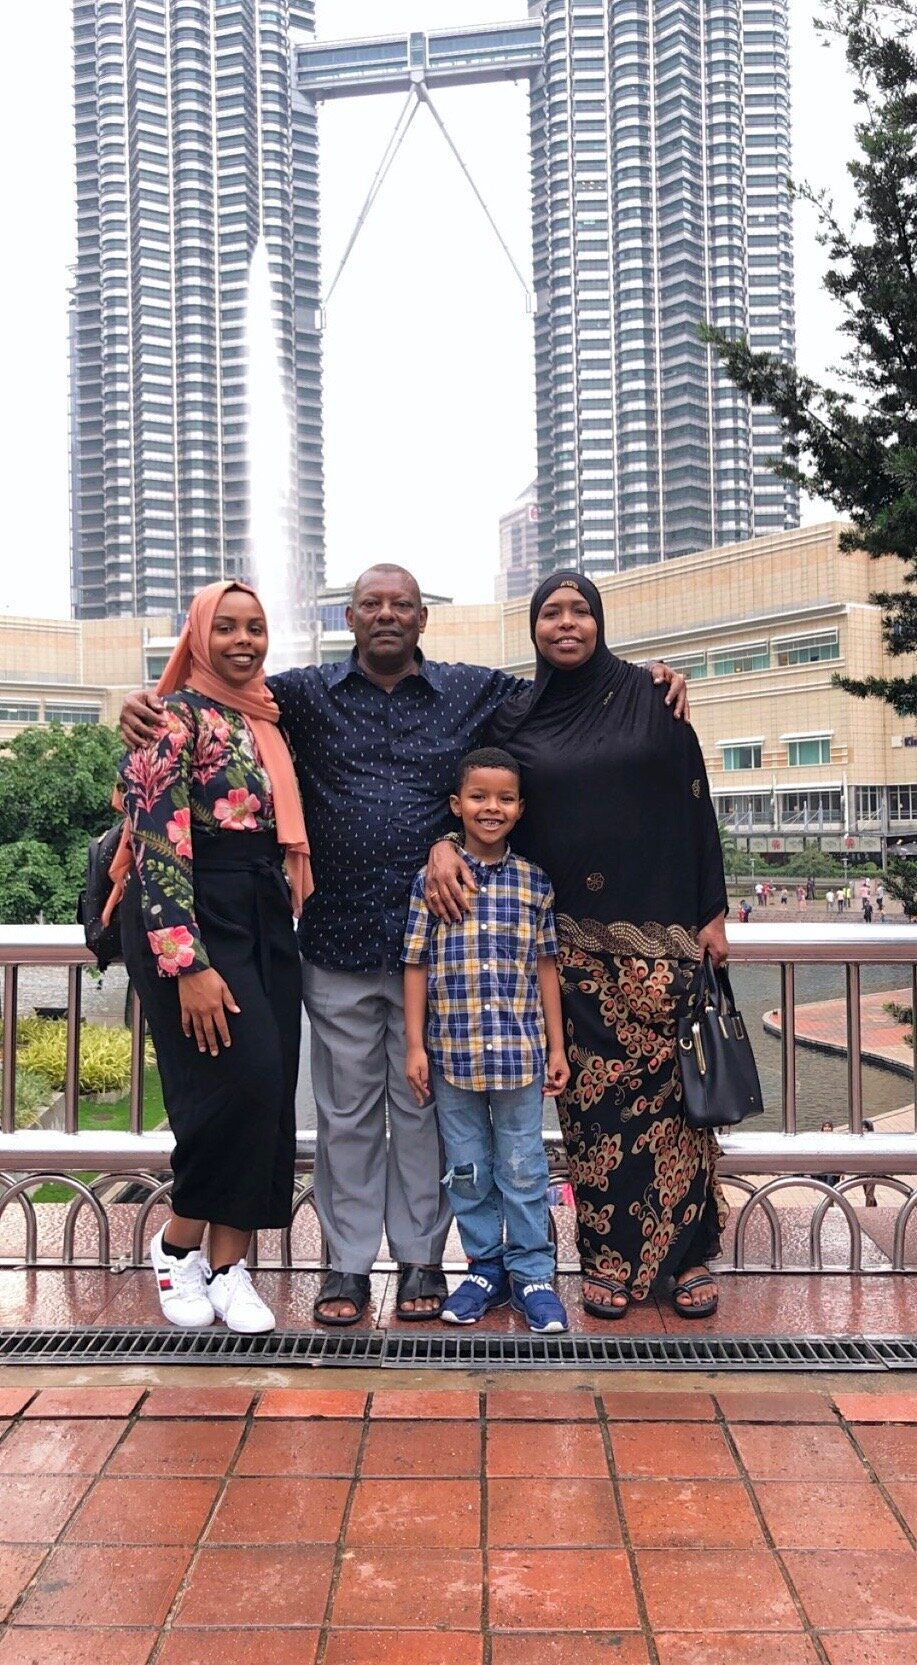 Afnan Salem with her parents and nephew in Kuala Lumpur during a recent visit in July 2019.